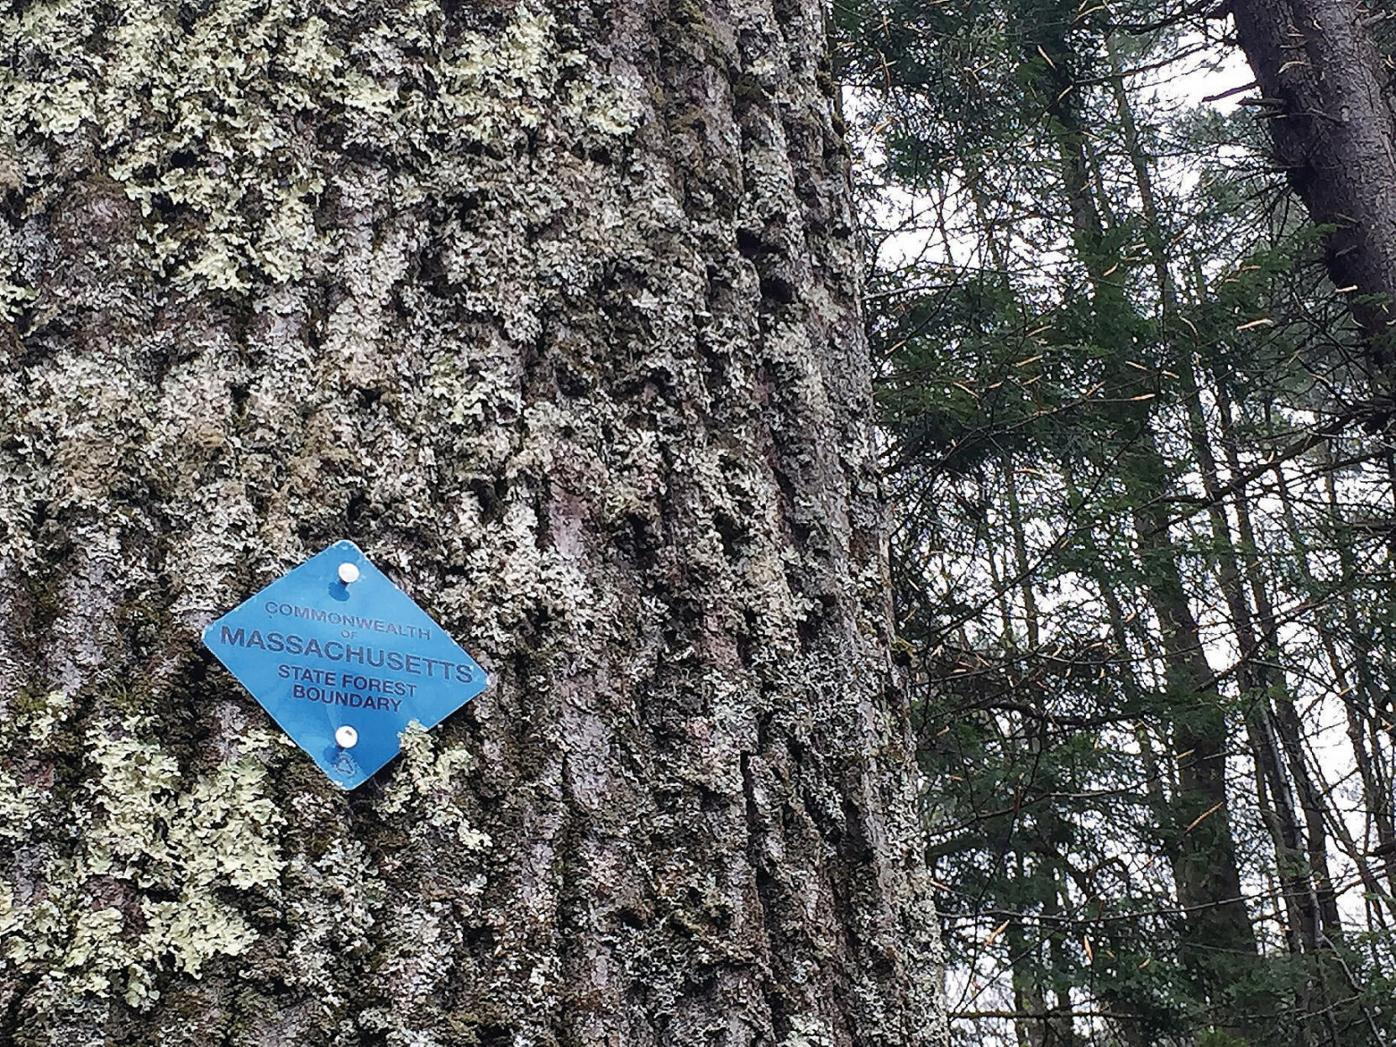 FERC still silent as Otis State Forest tree cutting begins for pipeline, but questions remain